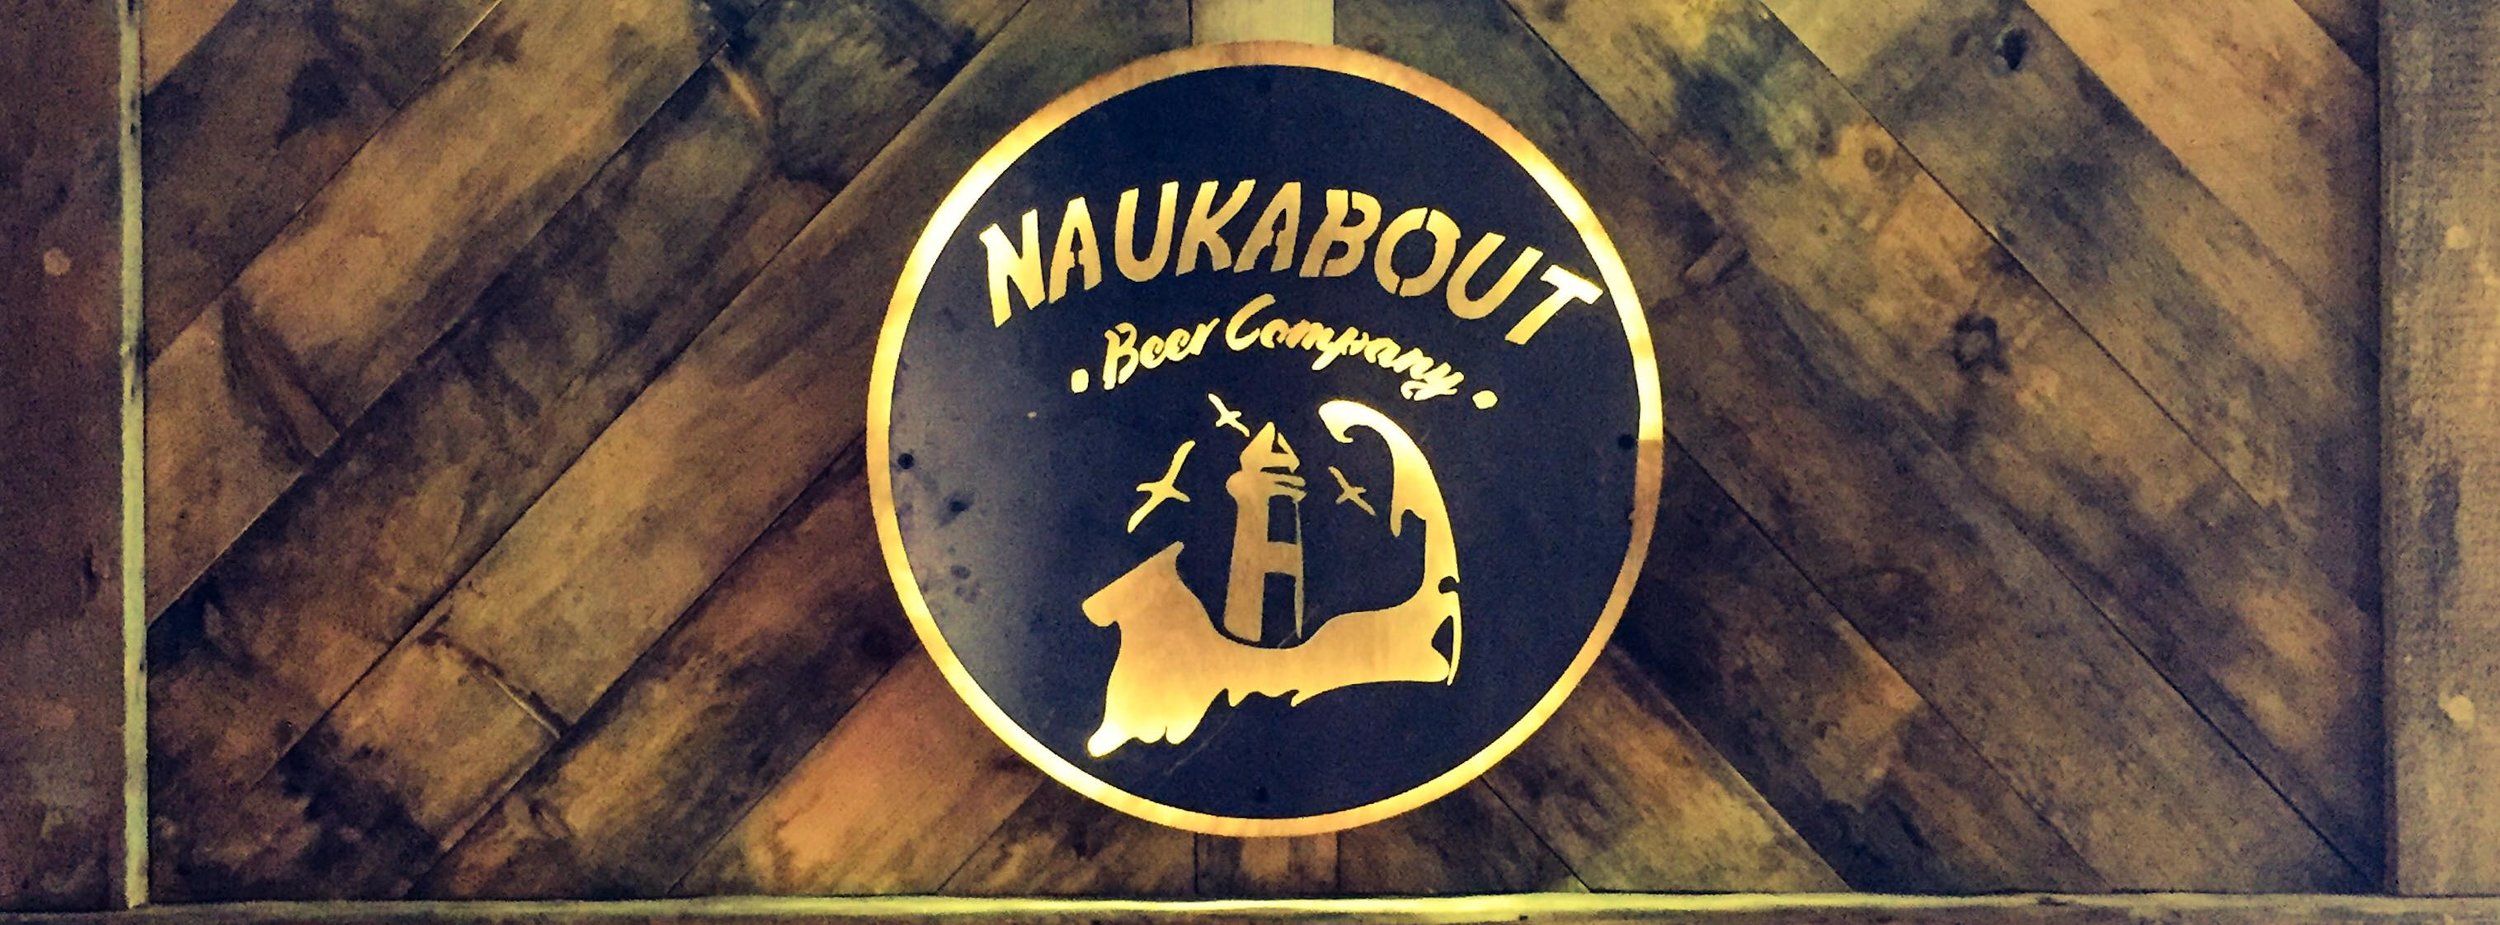 Naukabout Beer Co 8.jpg